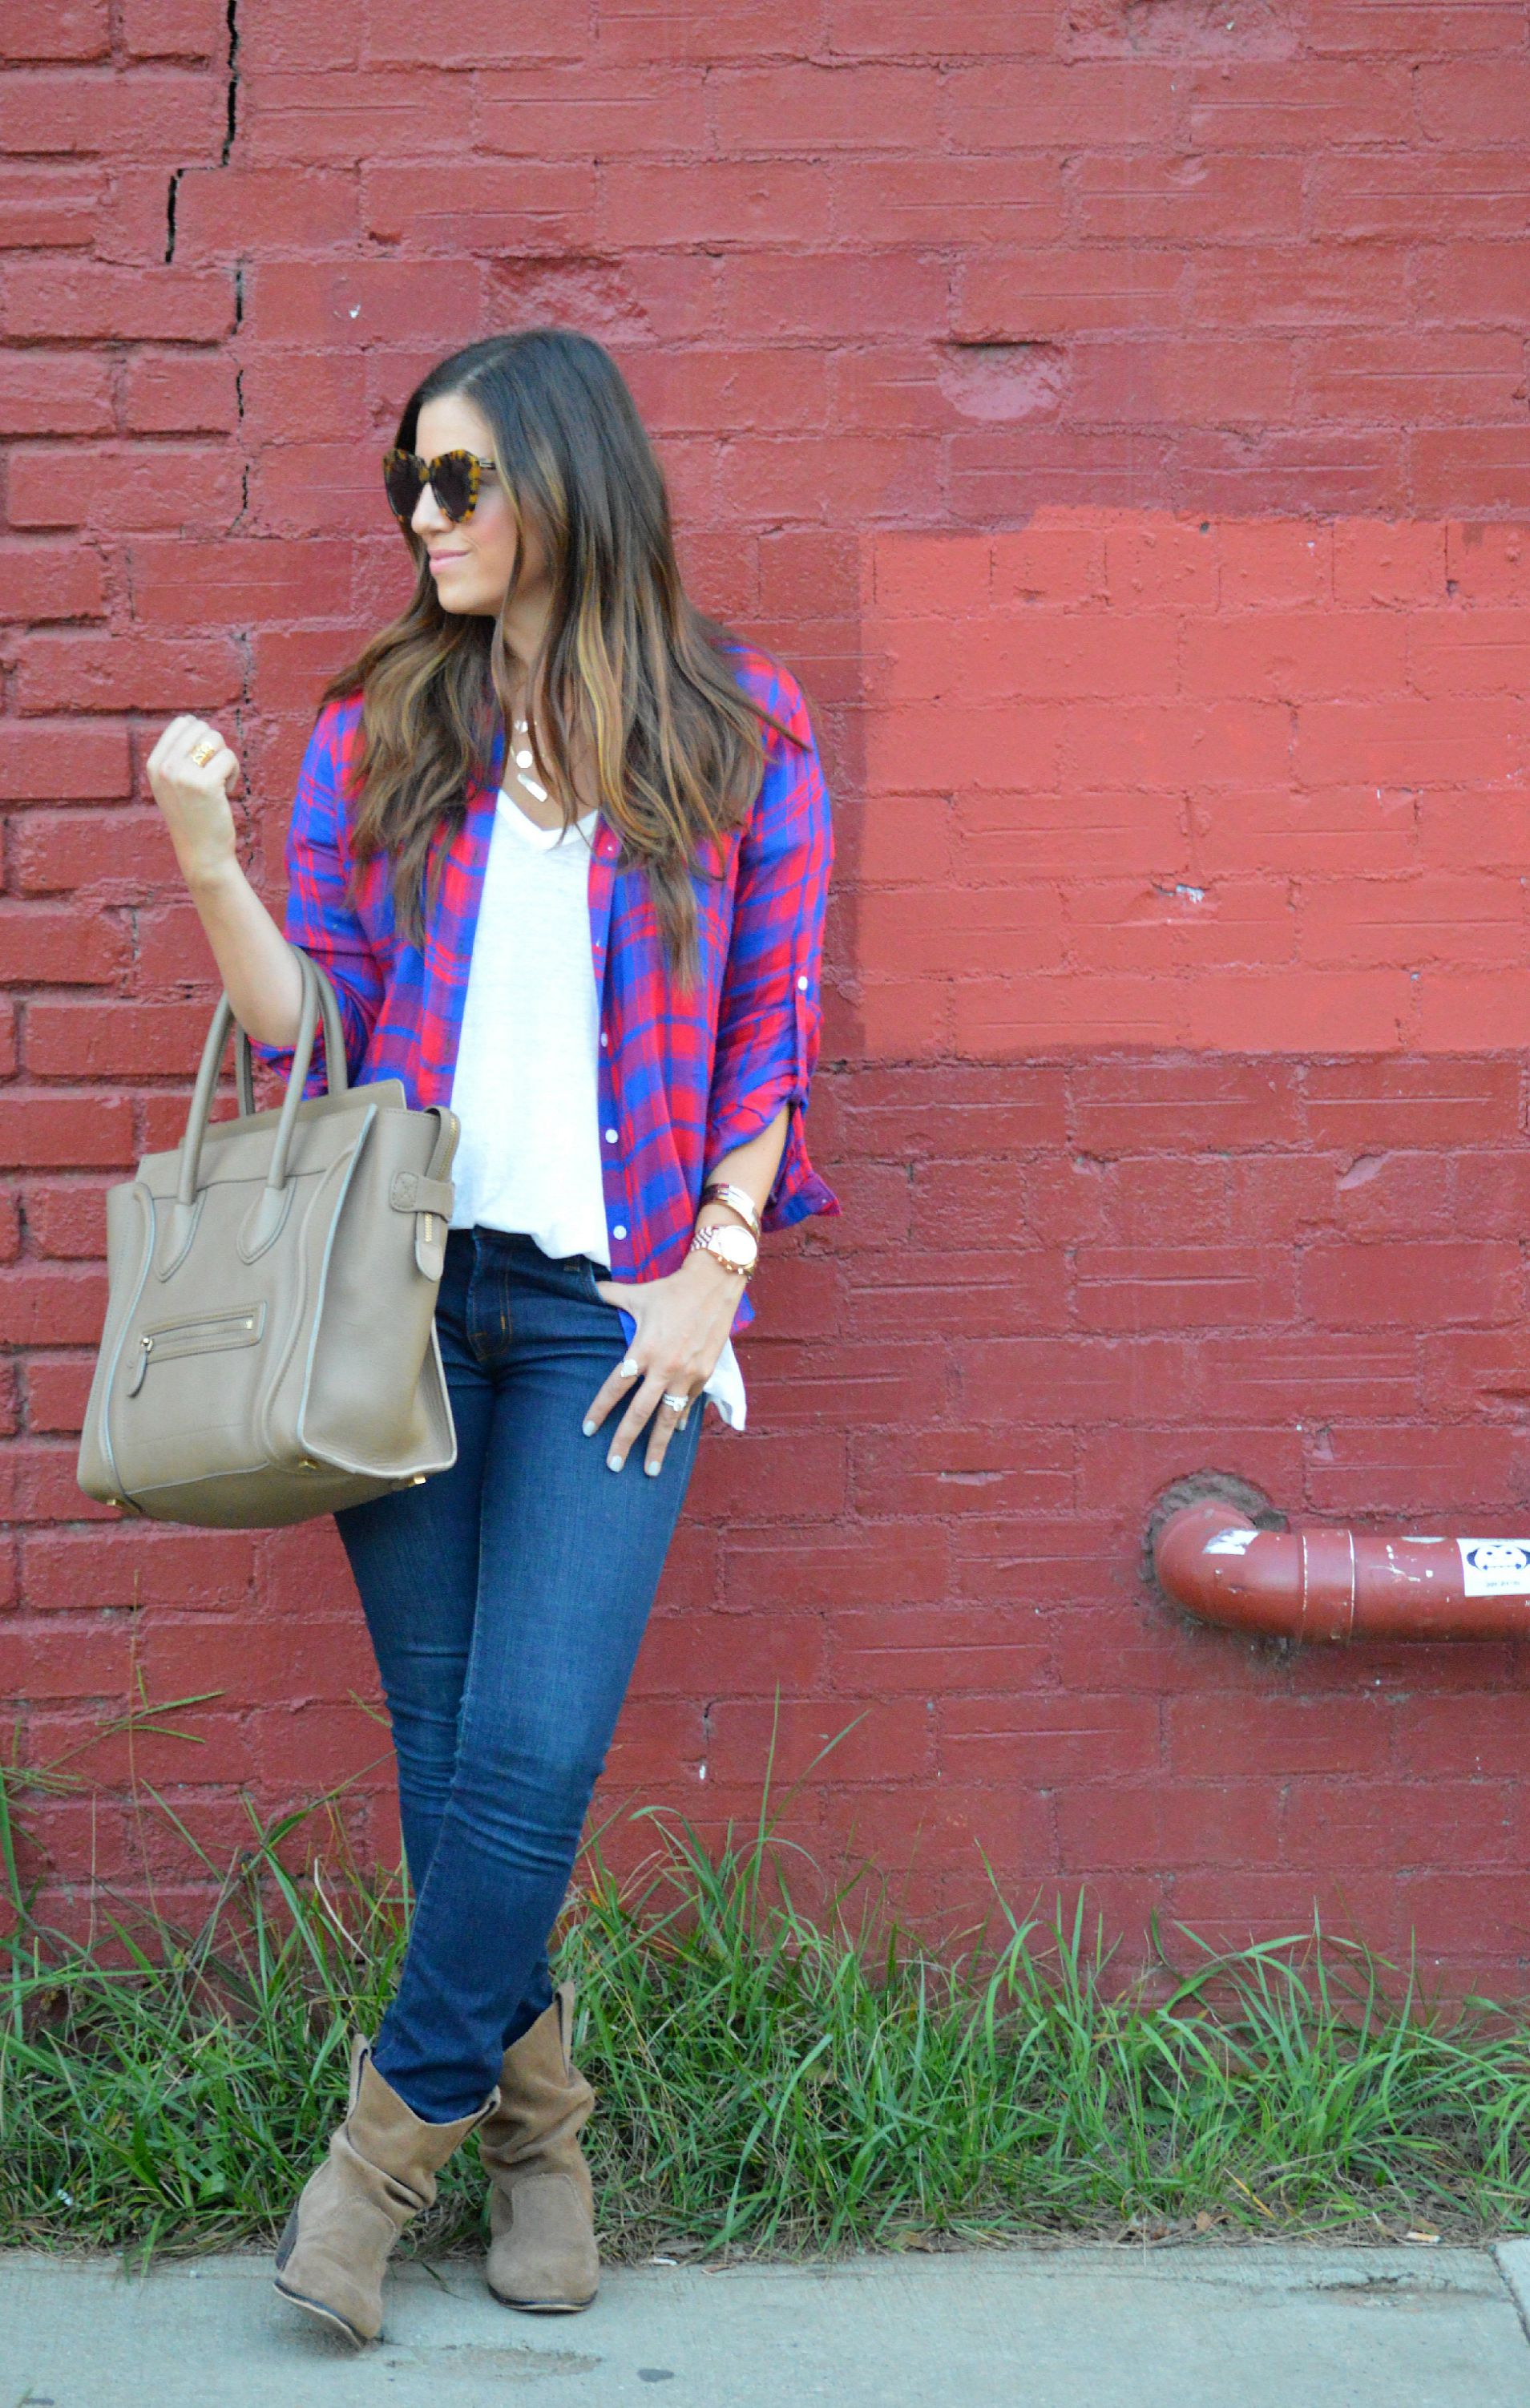 red and blue plaid shirt with jeans